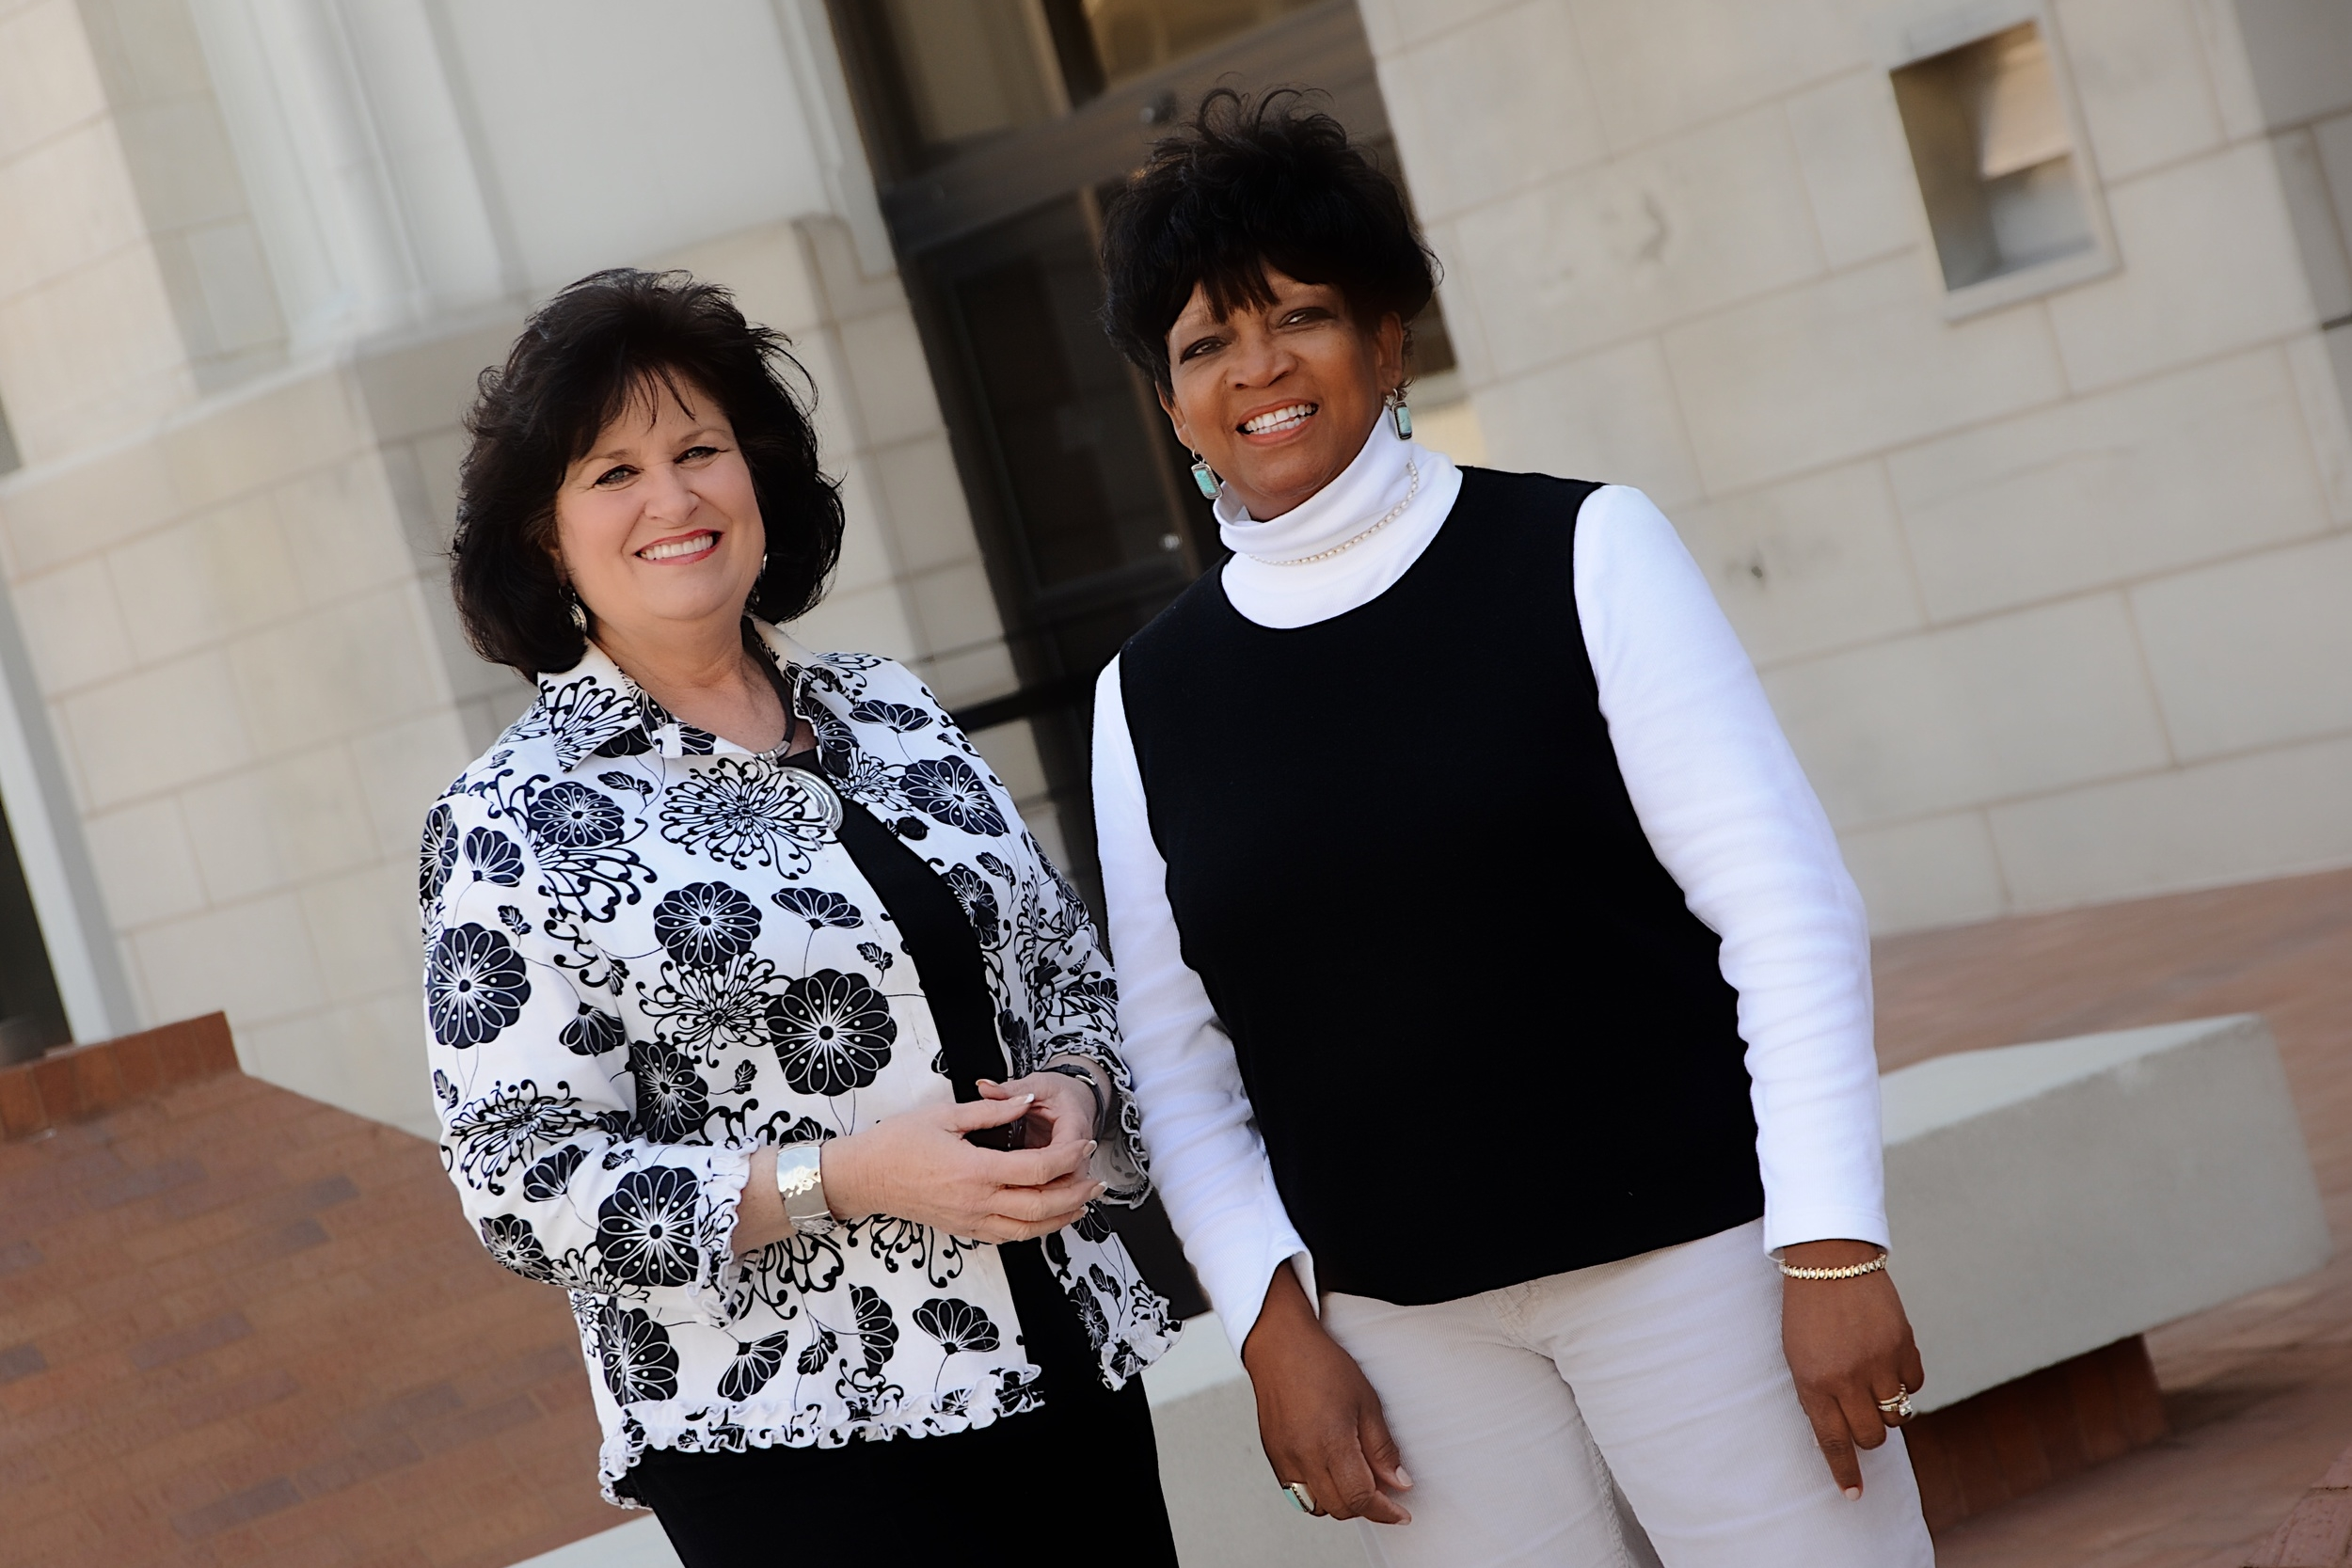 Christie Fowler and Frances Jordan, Greenwood Cultural Center Executive Director, helped integrate Tulsa Central High School in the mid/late 1960s and were close friends. After losing touch, they reconnected about 40 years later. Photographed in front of their former high school.